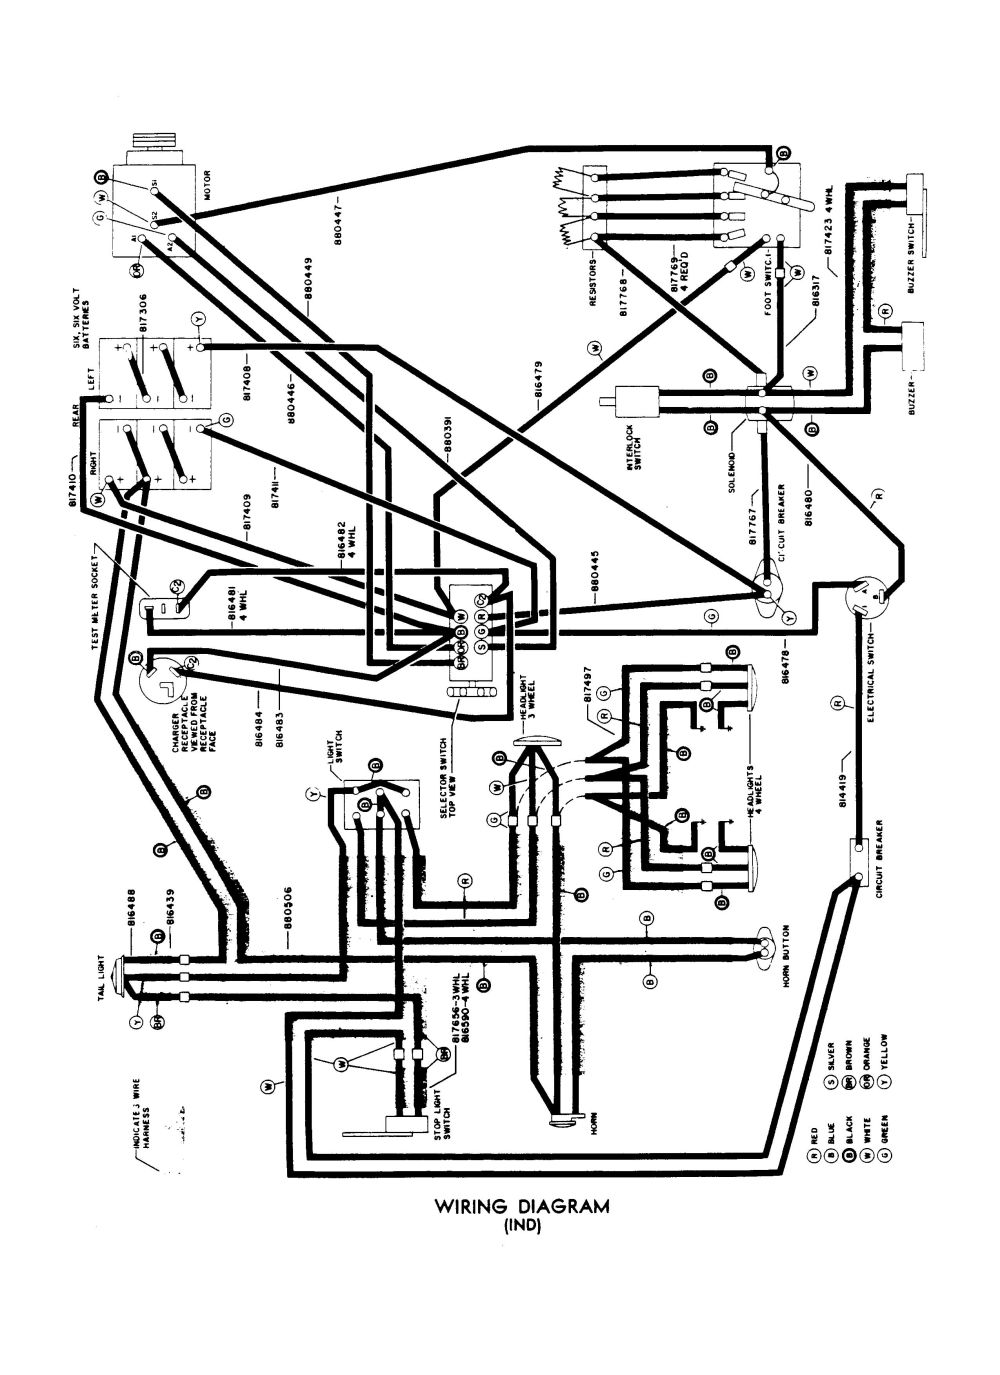 medium resolution of cushman wiring diagram 22 wiring diagram images wiring 1999 cushman haulster wiring diagram cherakee cushman cart wiring diagram 48 volt